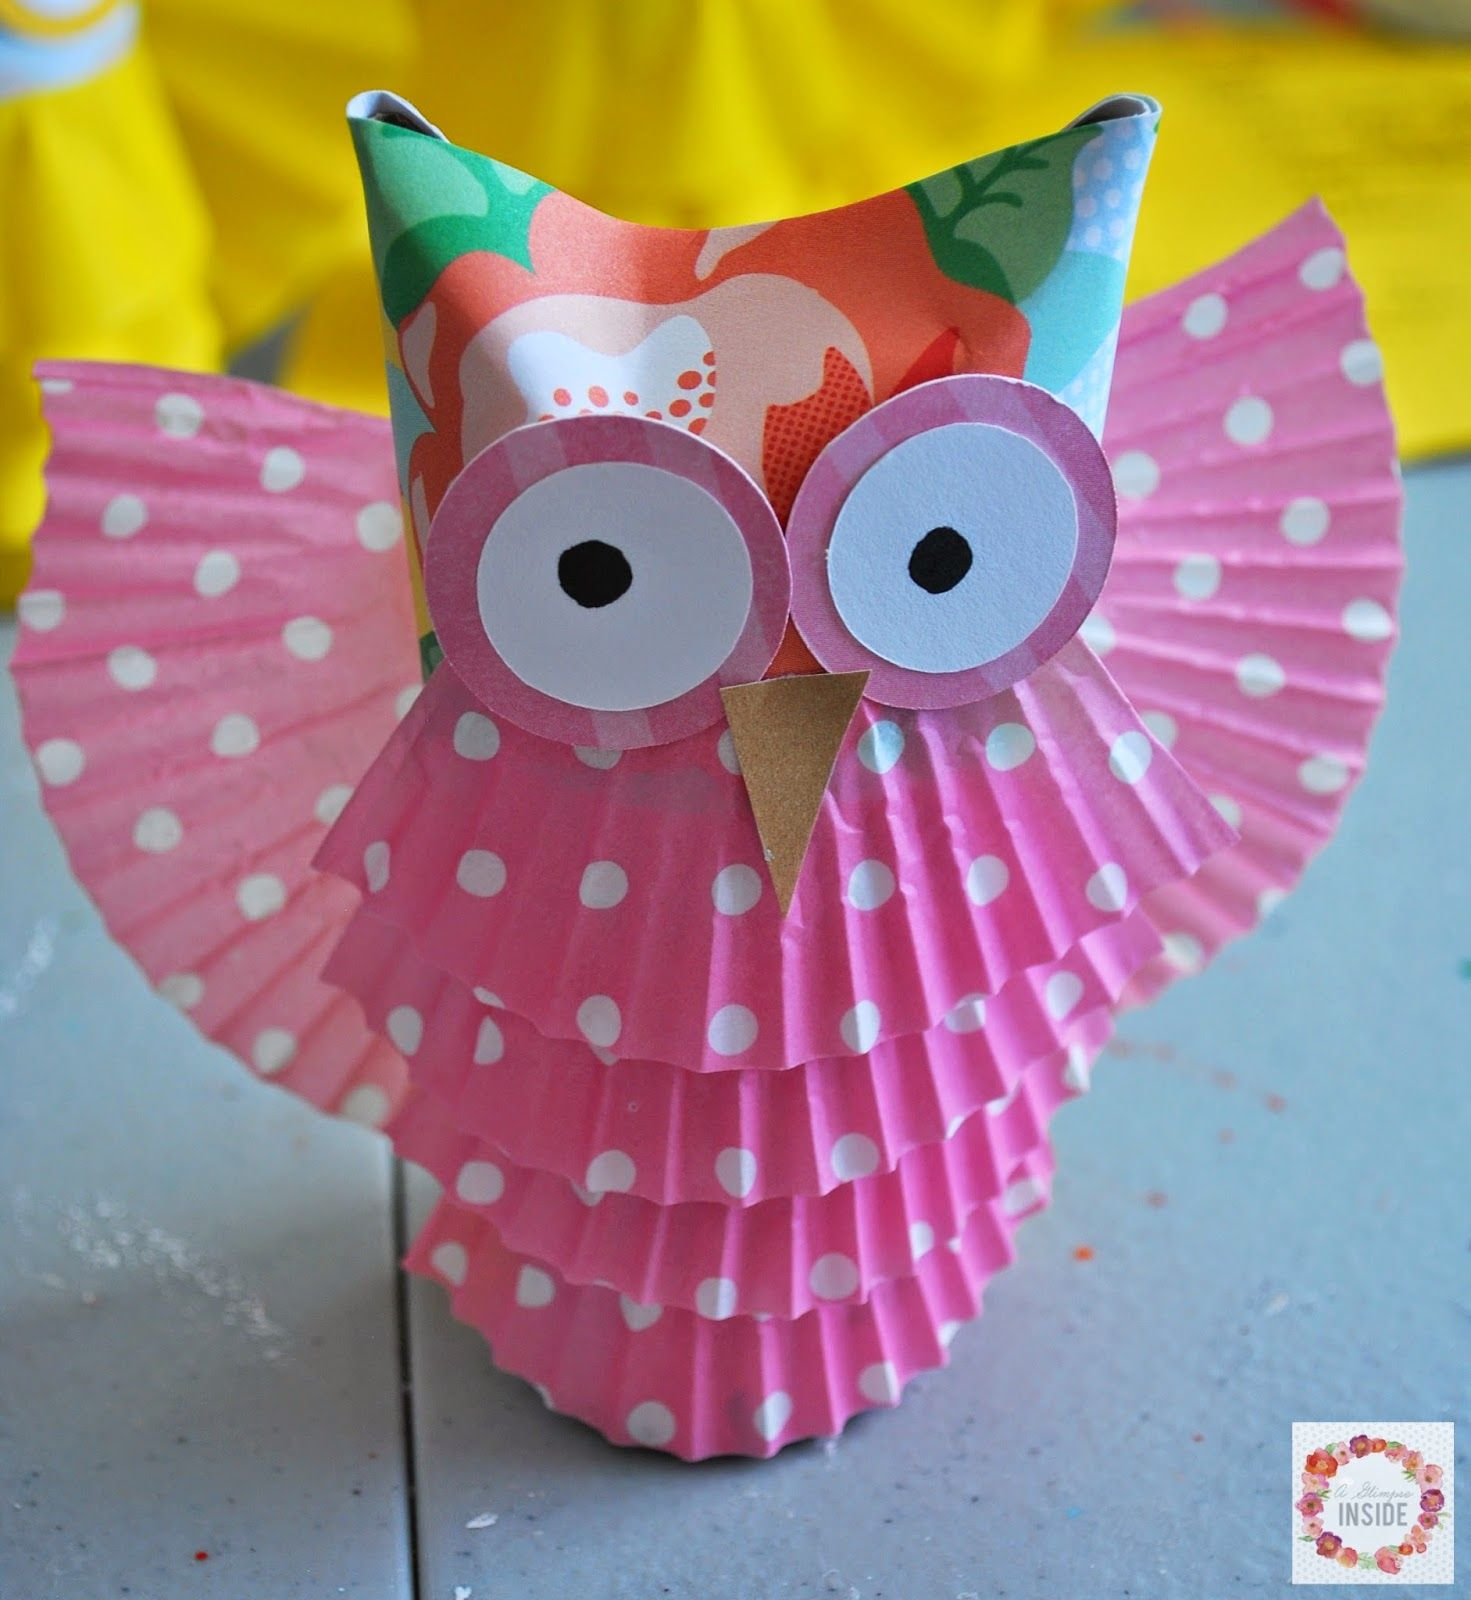 A Glimpse Inside: Toilet Paper Tube Owls